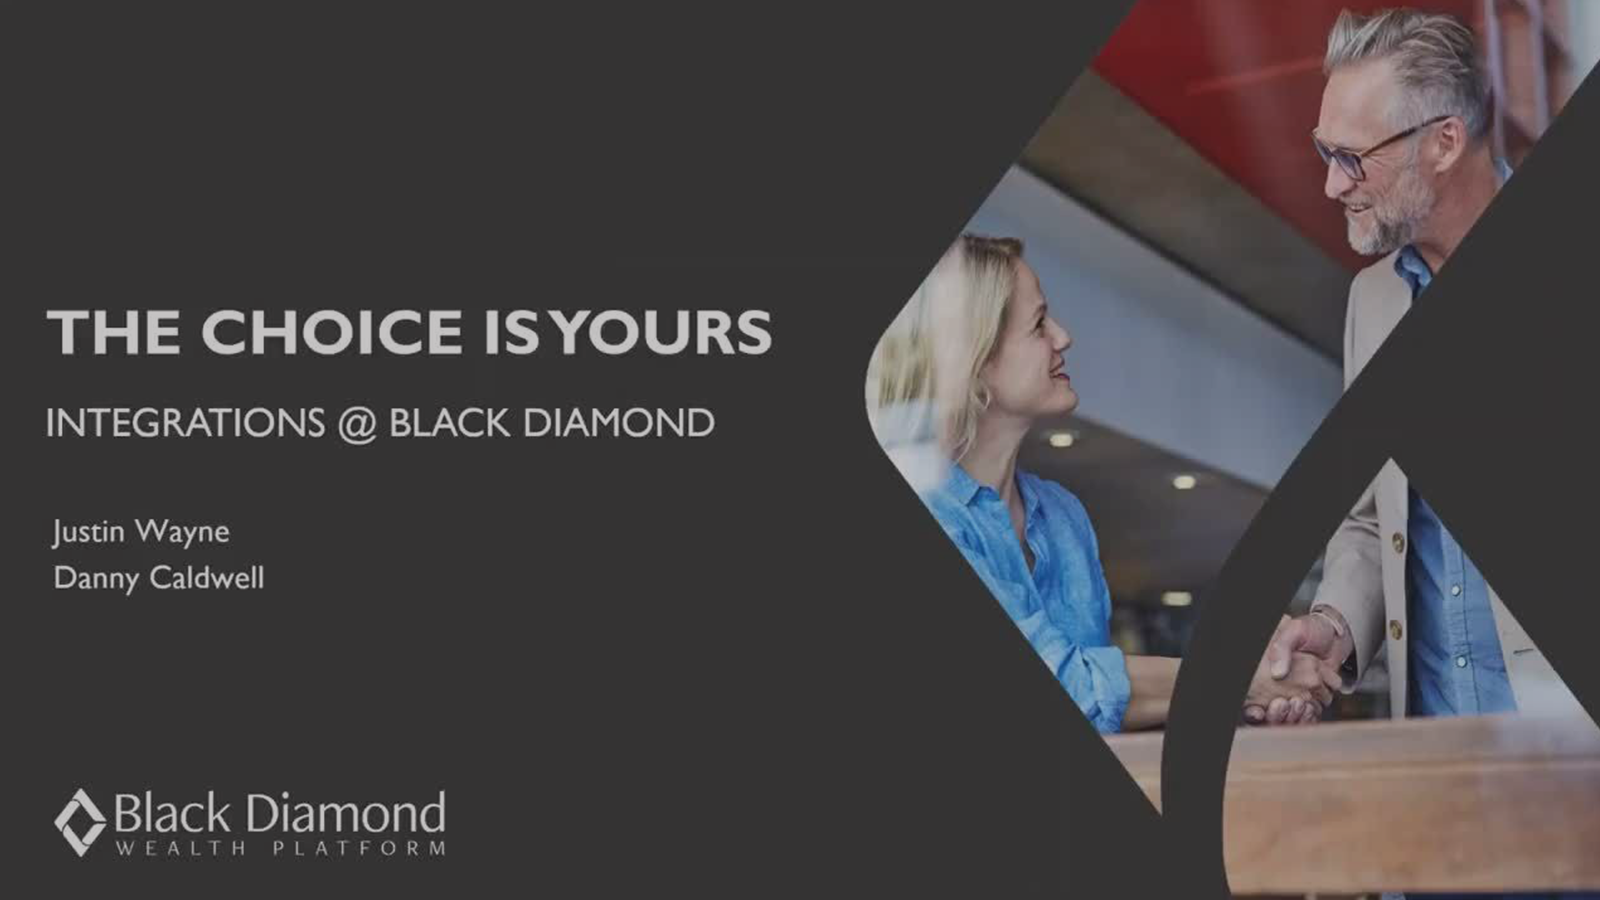 poster image for Black Diamond Integrations: The Choice is Yours